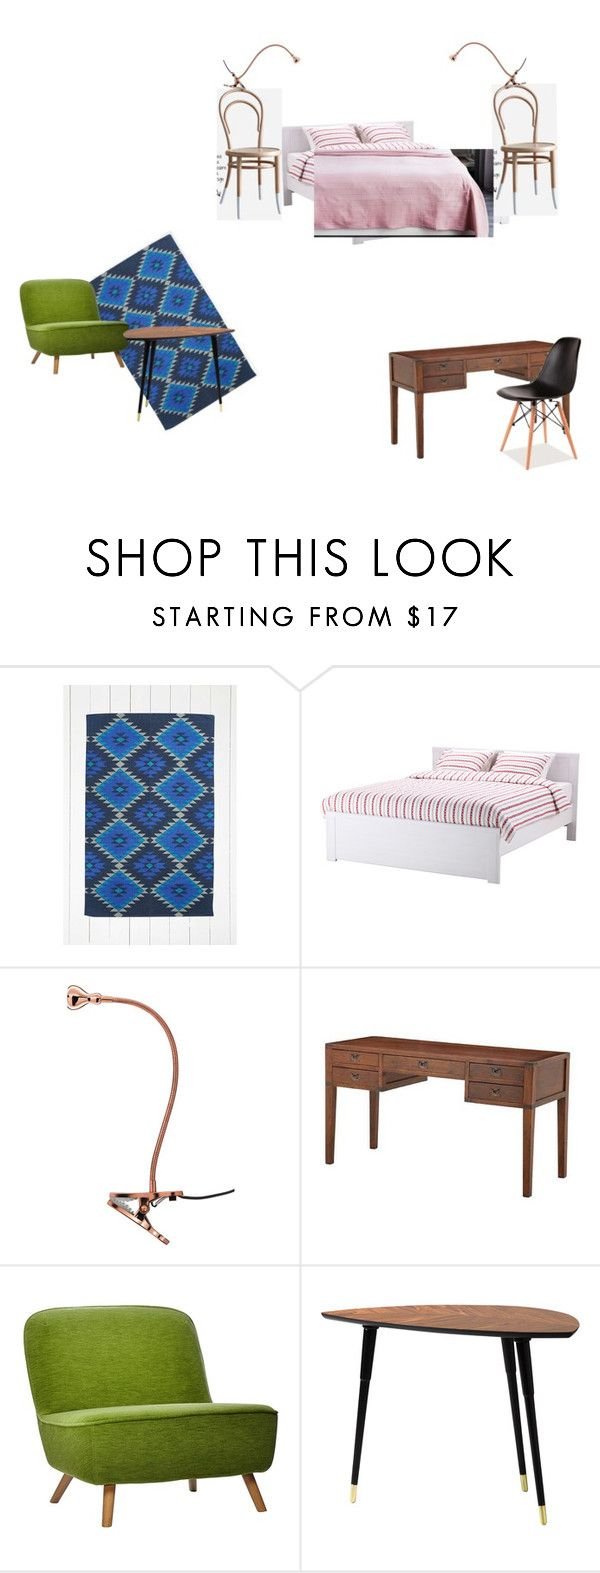 """Nagydiófa big bedroom upstairs right 2"" by dzsu-538 on Polyvore featuring interior, interiors, interior design, home, home decor, interior decorating, Eichholtz, Moooi and bedroom"